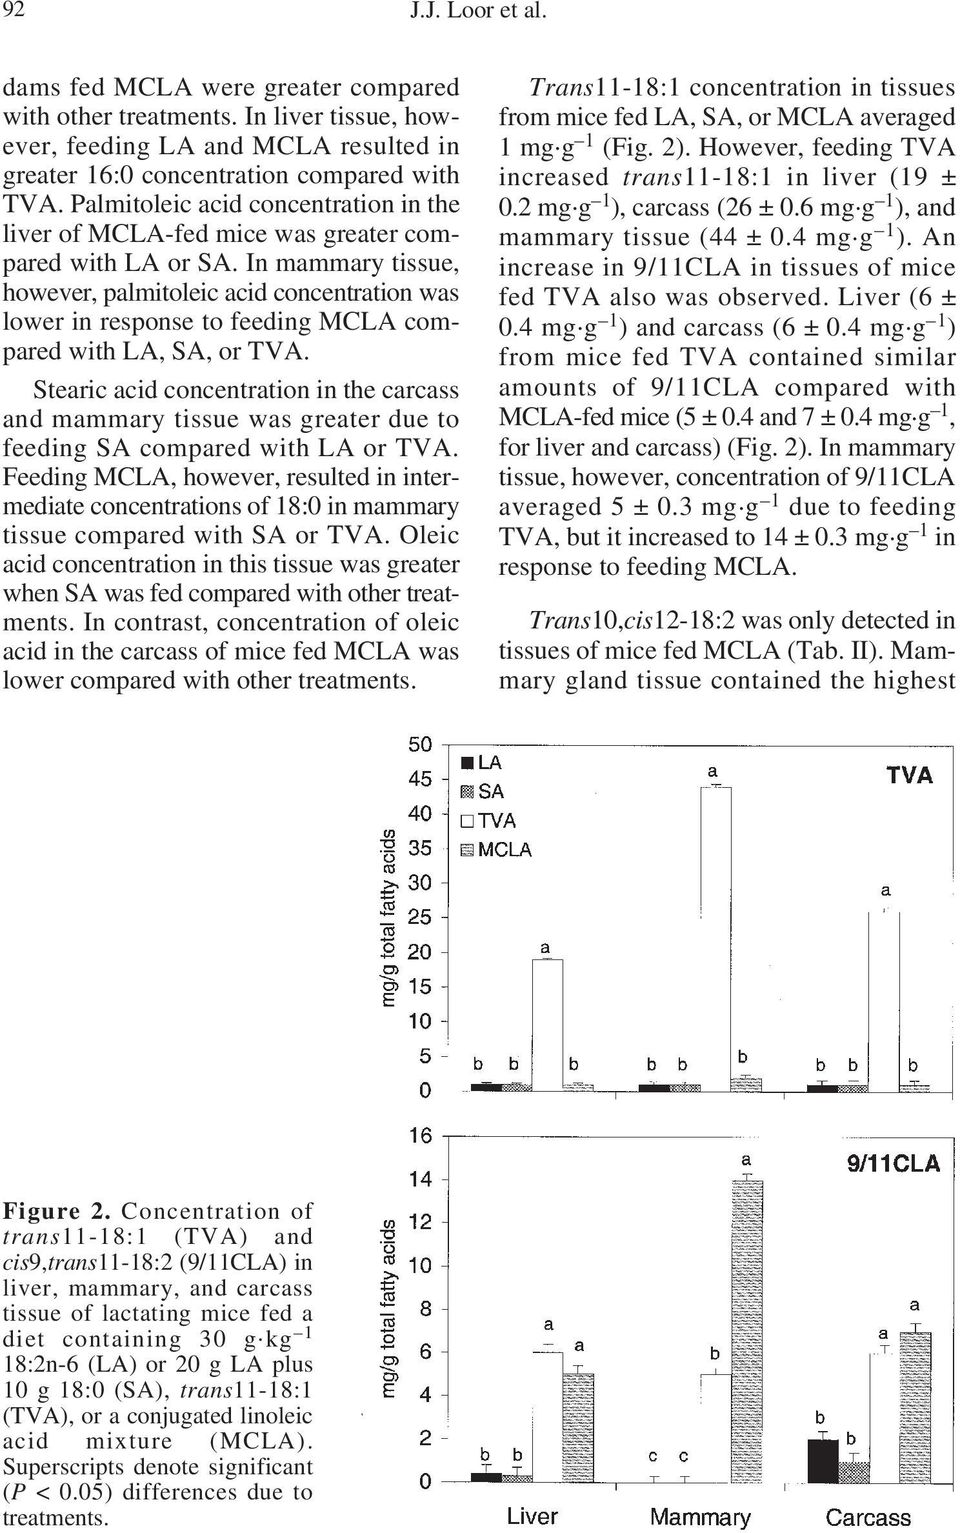 In mammary tissue, however, palmitoleic acid concentration was lower in response to feeding MCLA compared with LA, SA, or TVA.